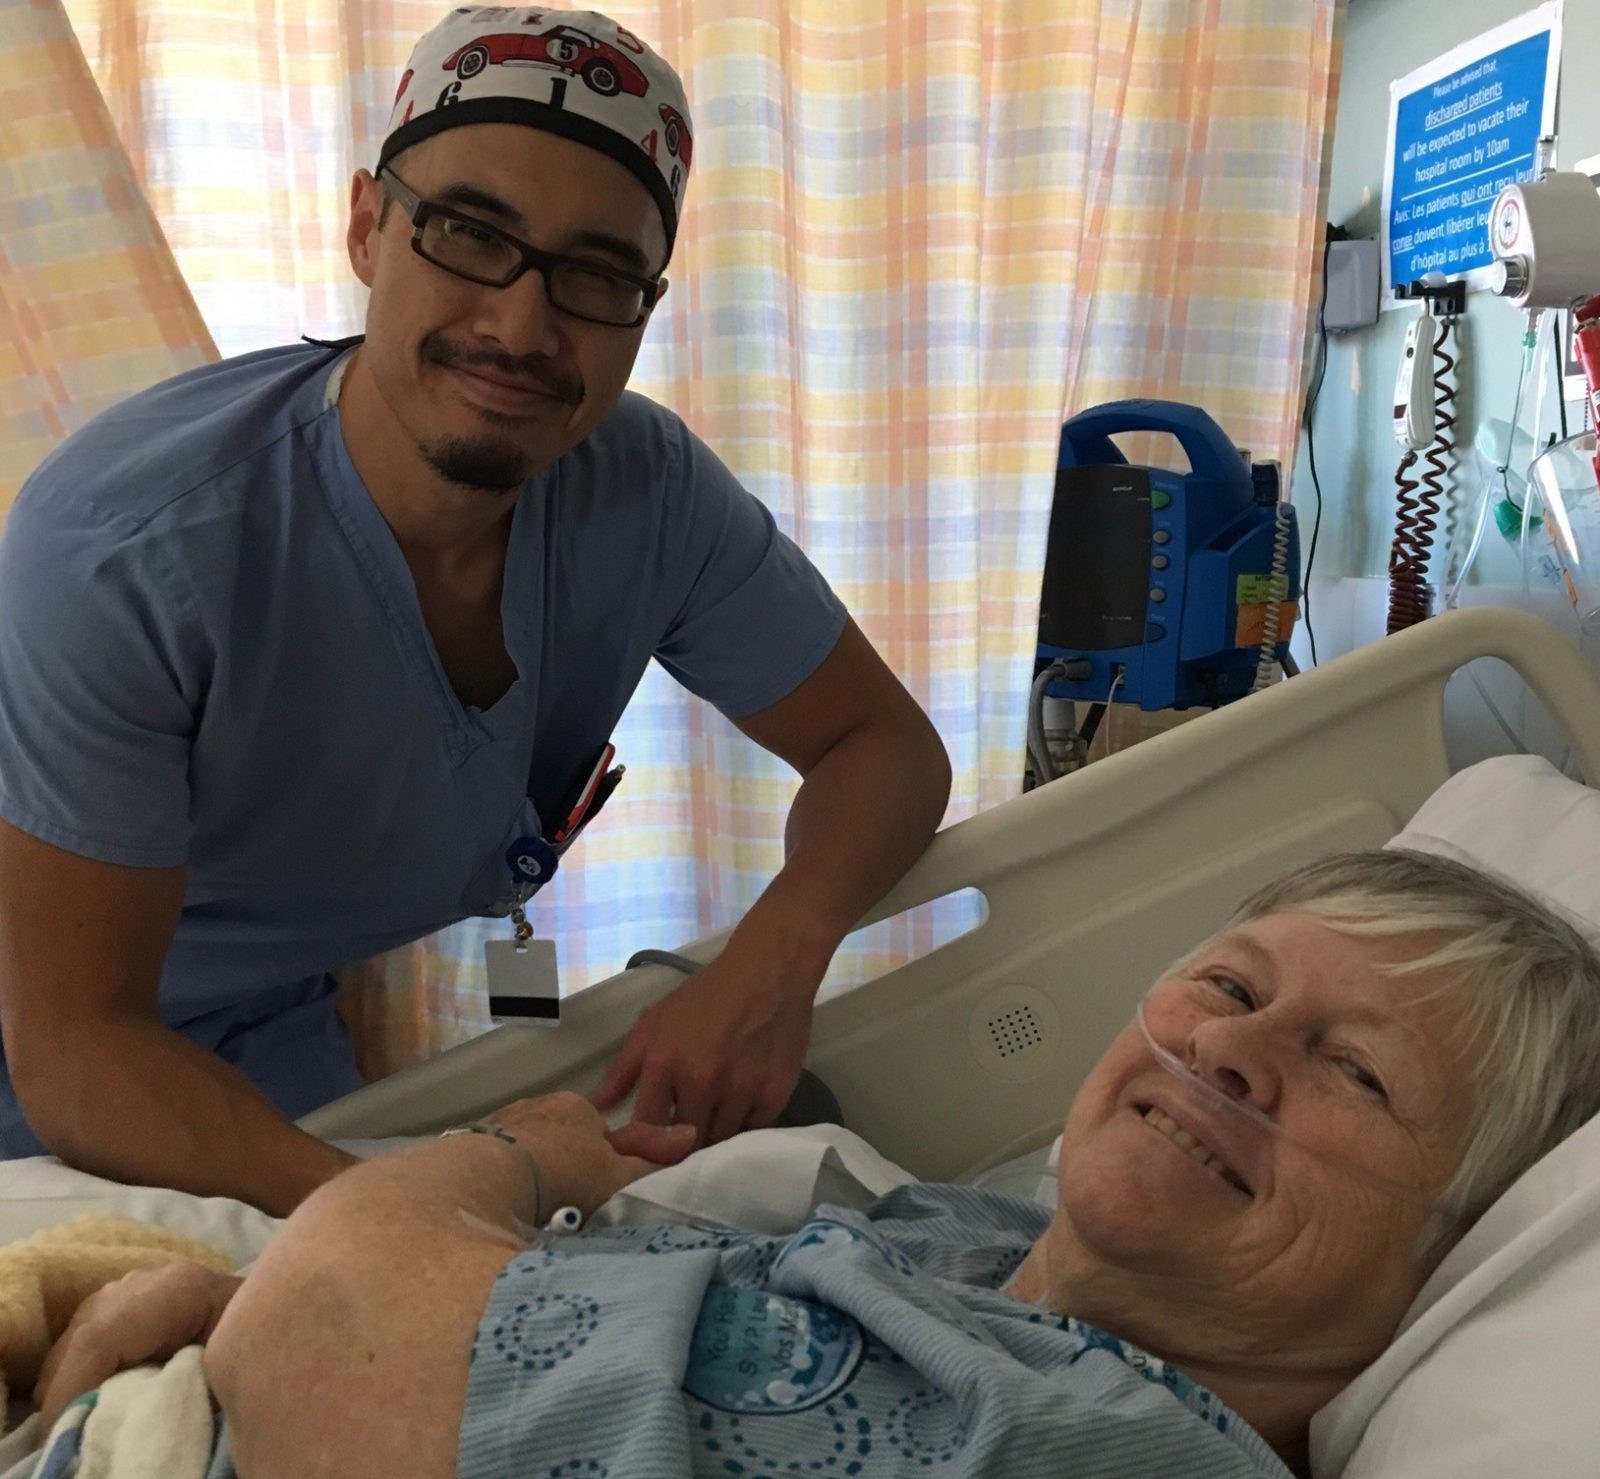 Rescued refugee treats patient who supported refugees